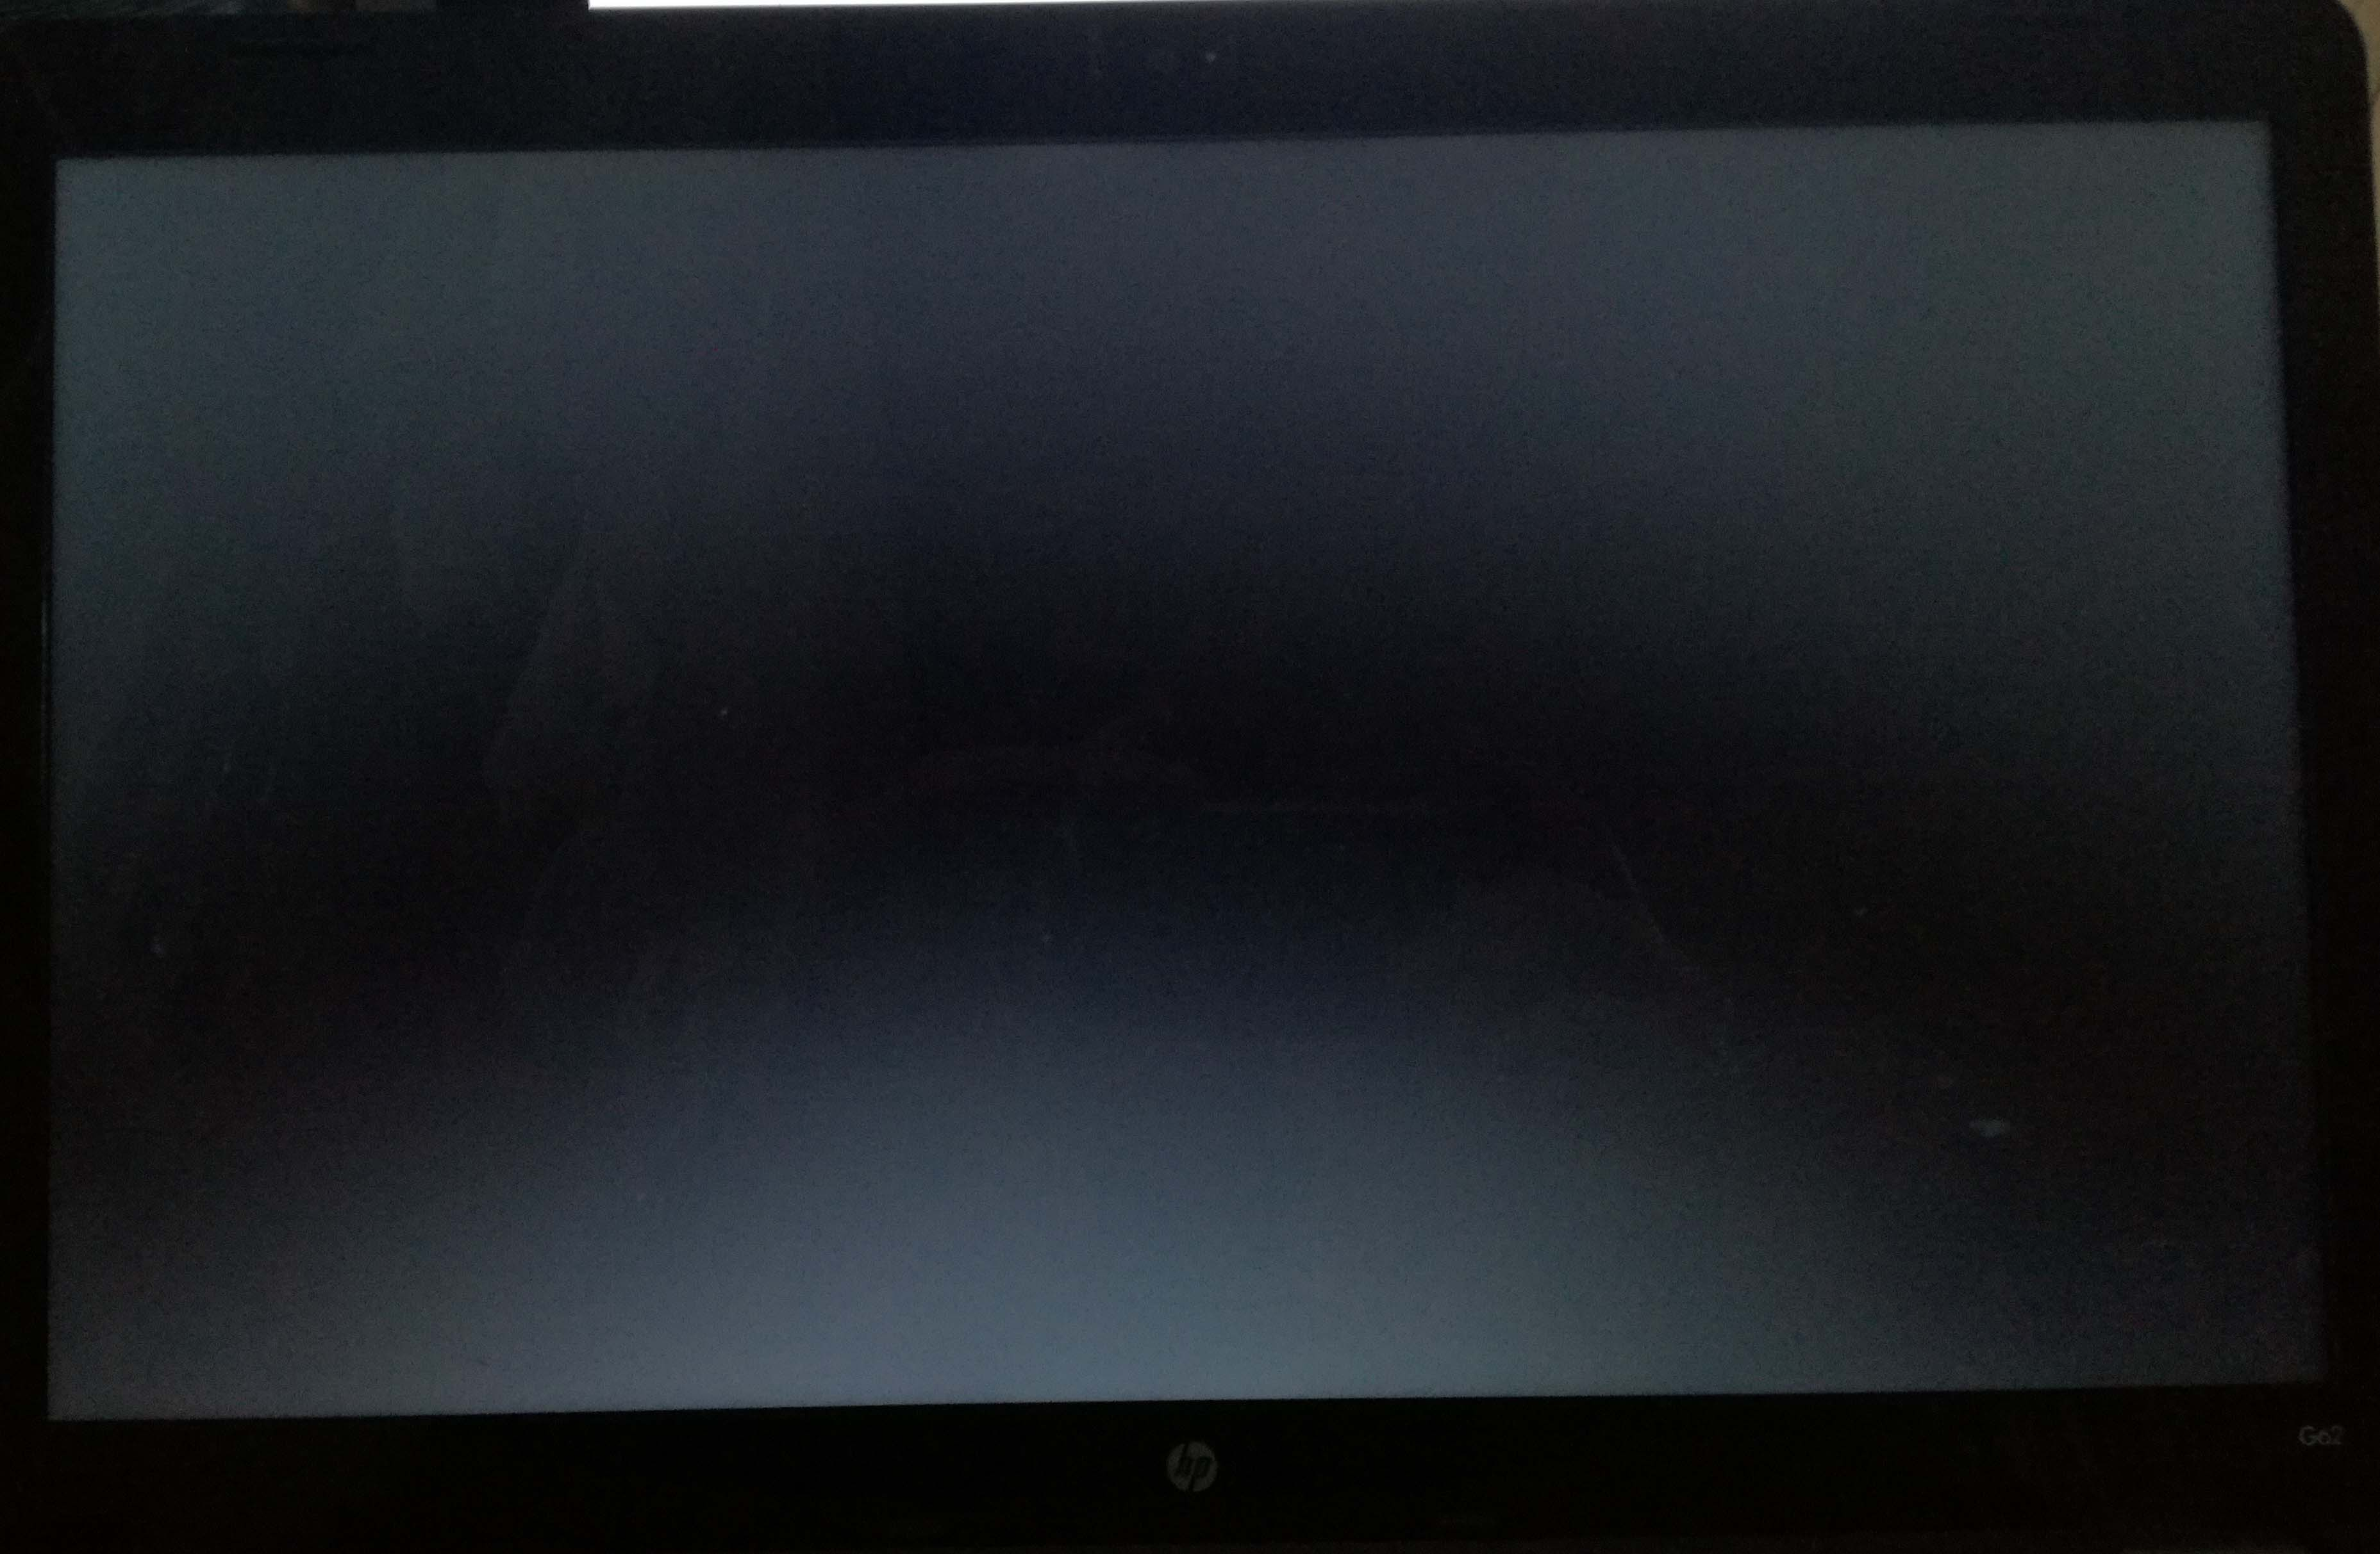 Drivers for HP G62-367DX Notebook AMD HD VGA